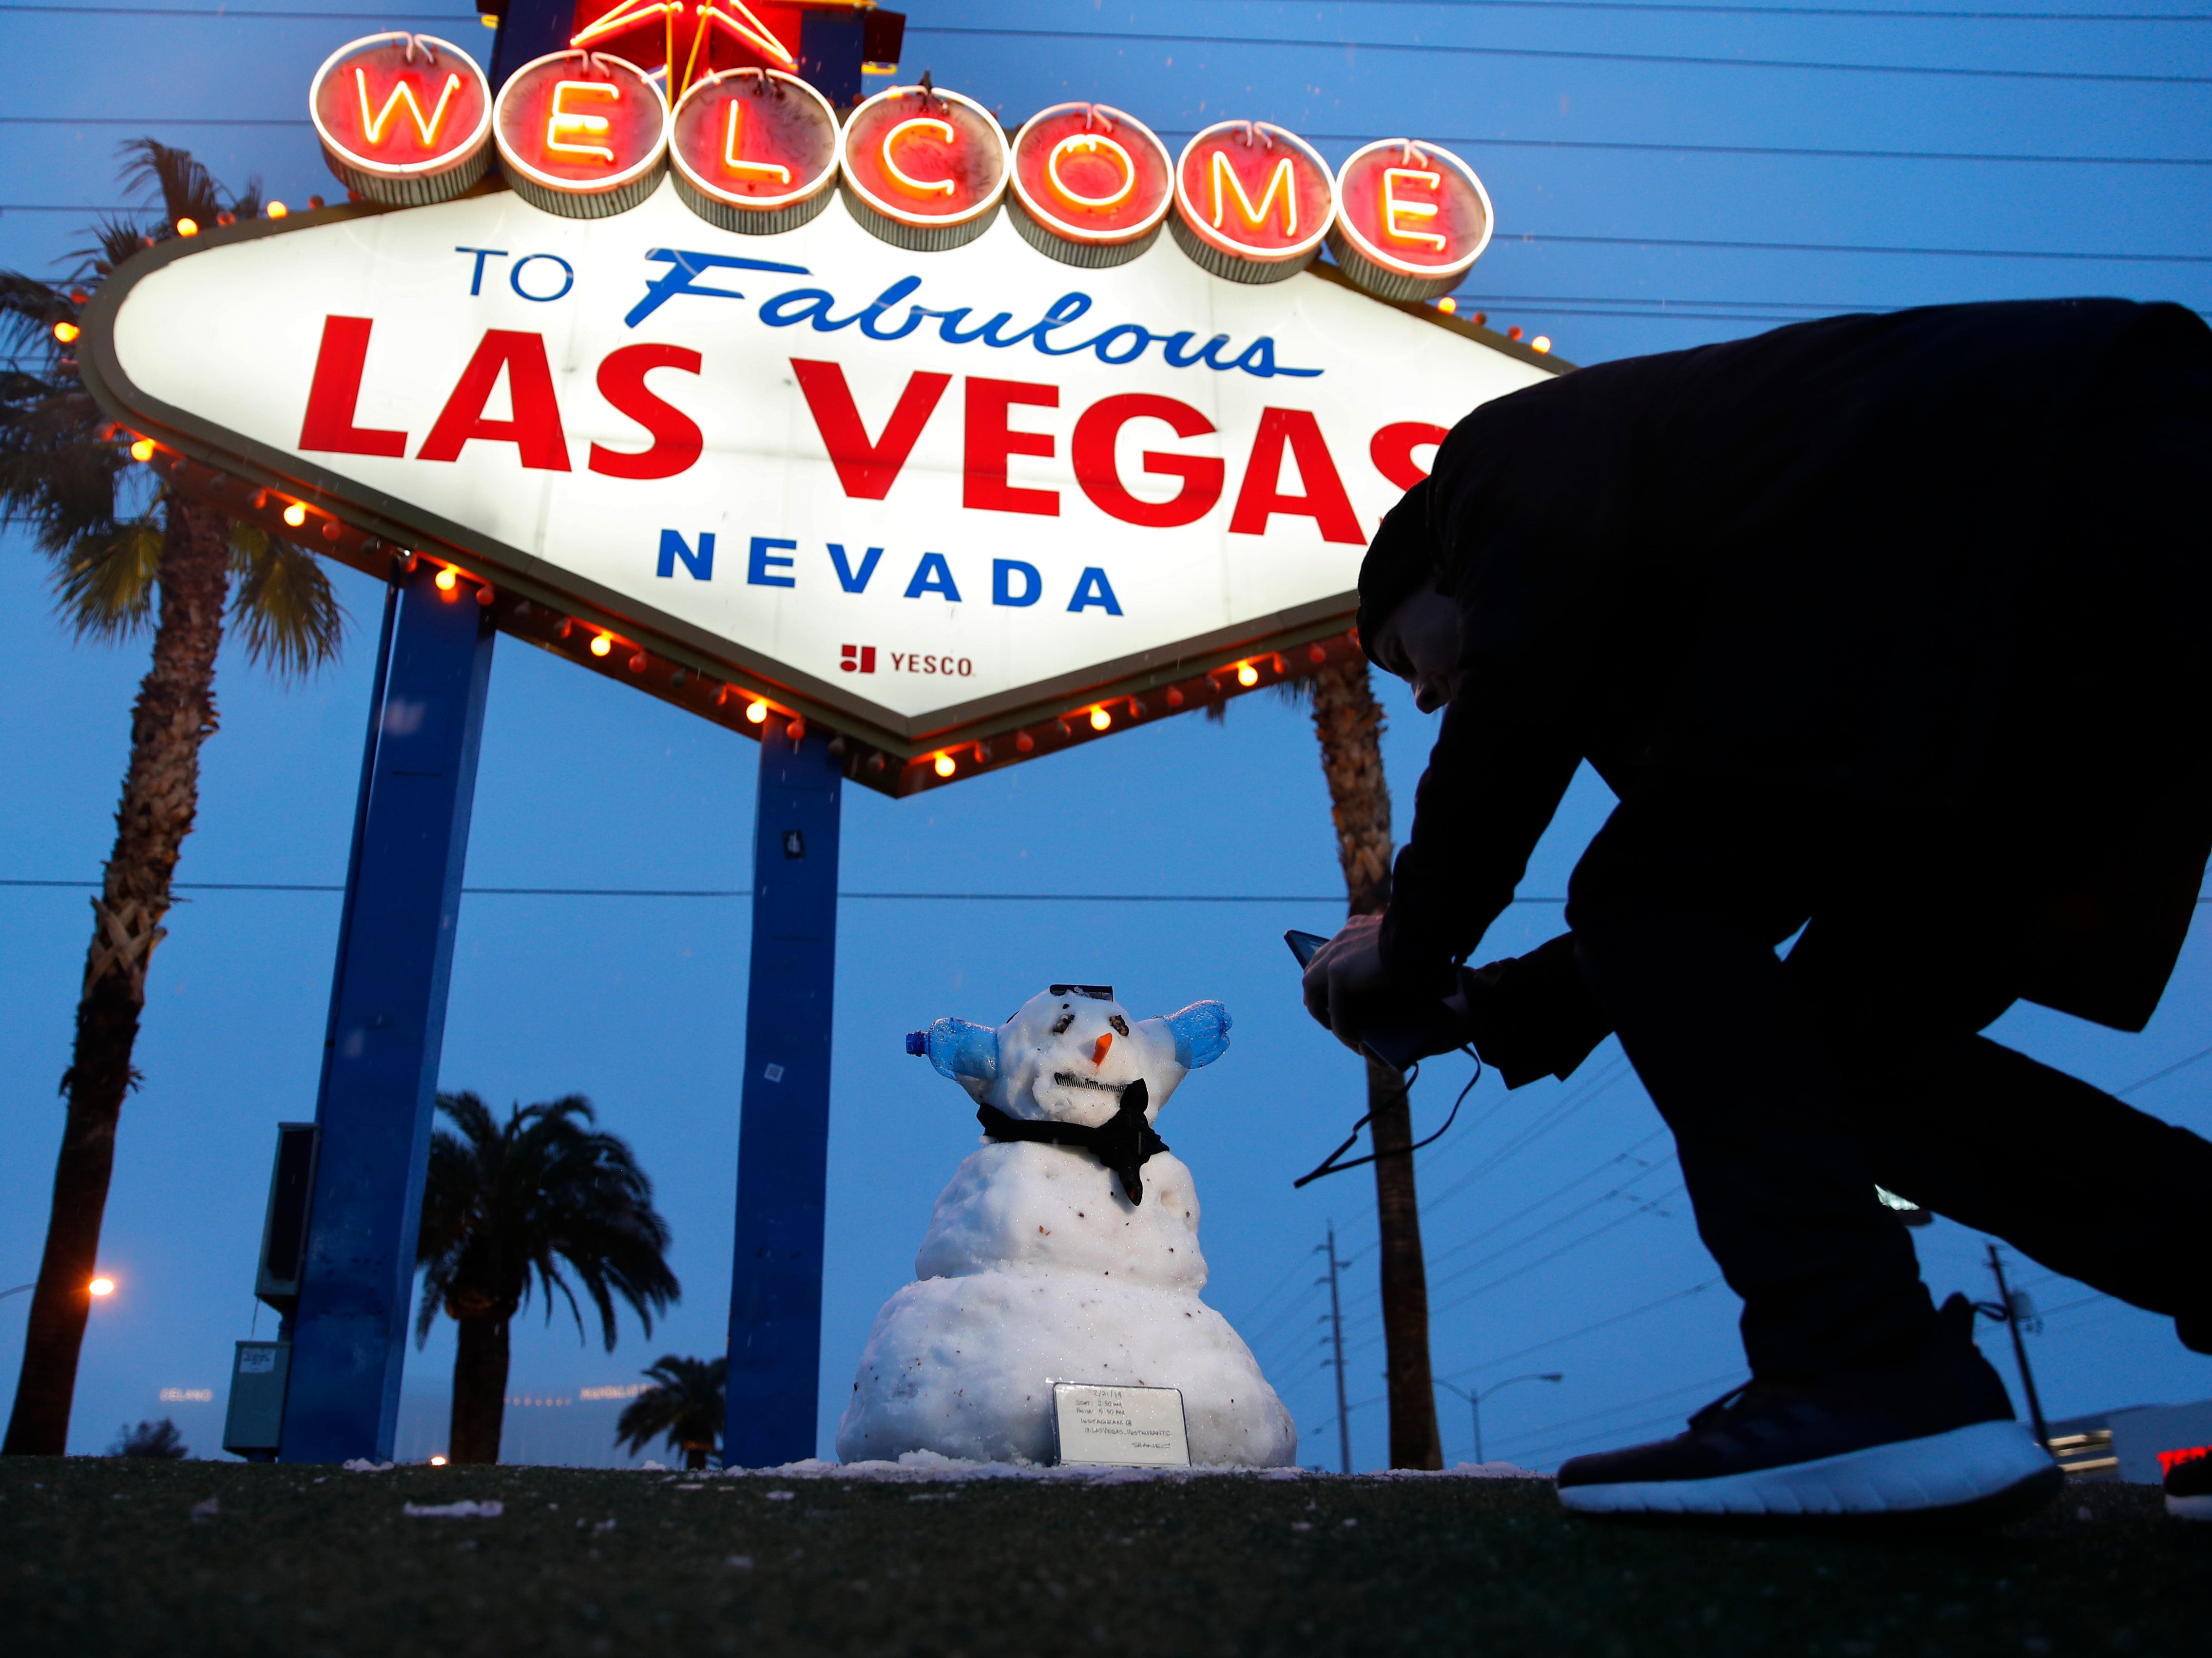 """A man takes a picture of a small snowman at the """"Welcome to Fabulous Las Vegas"""" sign along the Las Vegas Strip, Thursday, Feb. 21, 2019, in Las Vegas. Las Vegas is getting a rare taste of real winter weather, with significant snowfall across the metro area in the first event of its kind since record-keeping started in 1937."""